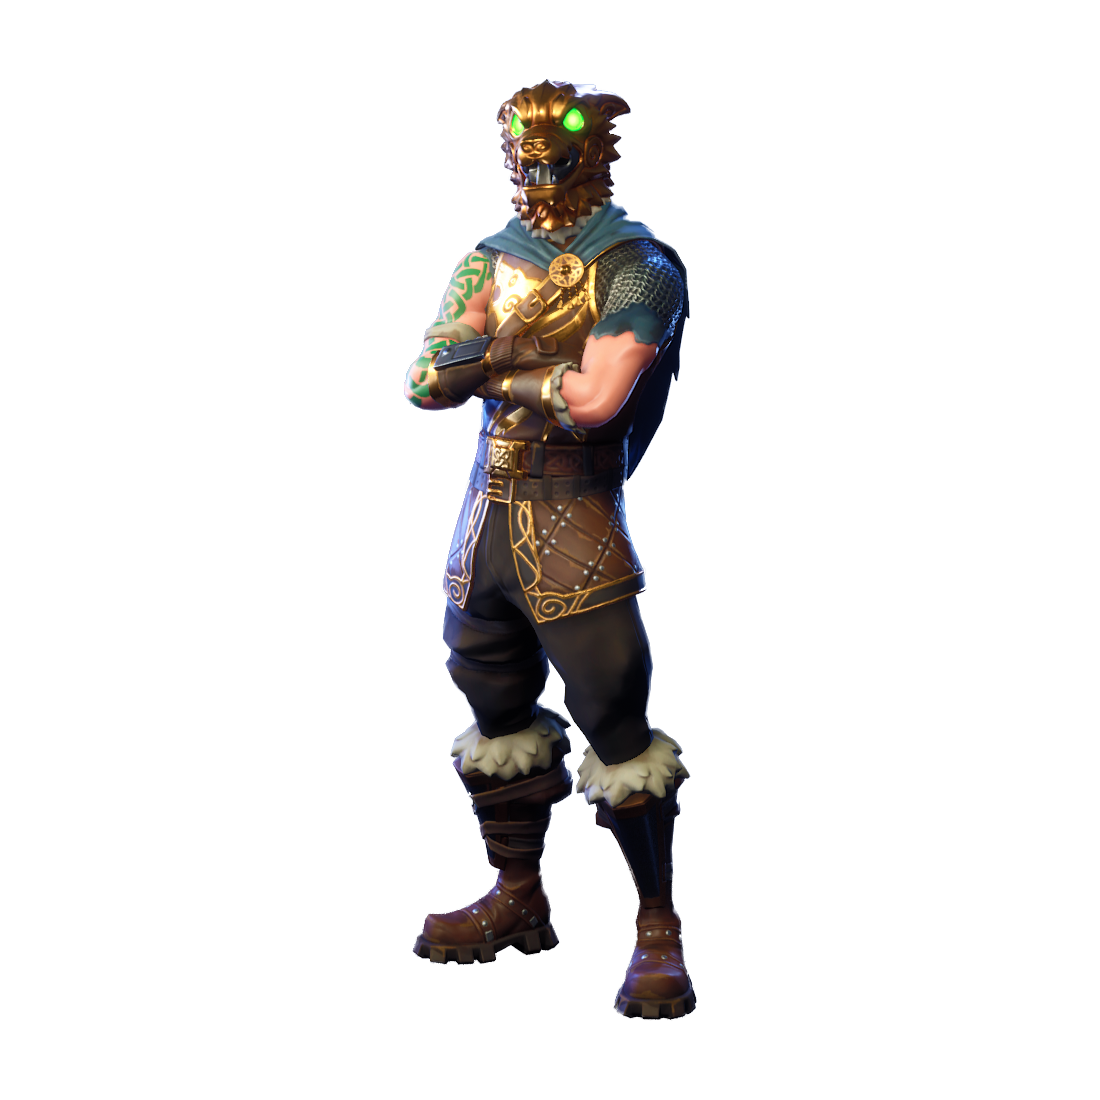 Fnbr co fortnite cosmetics. Google png images